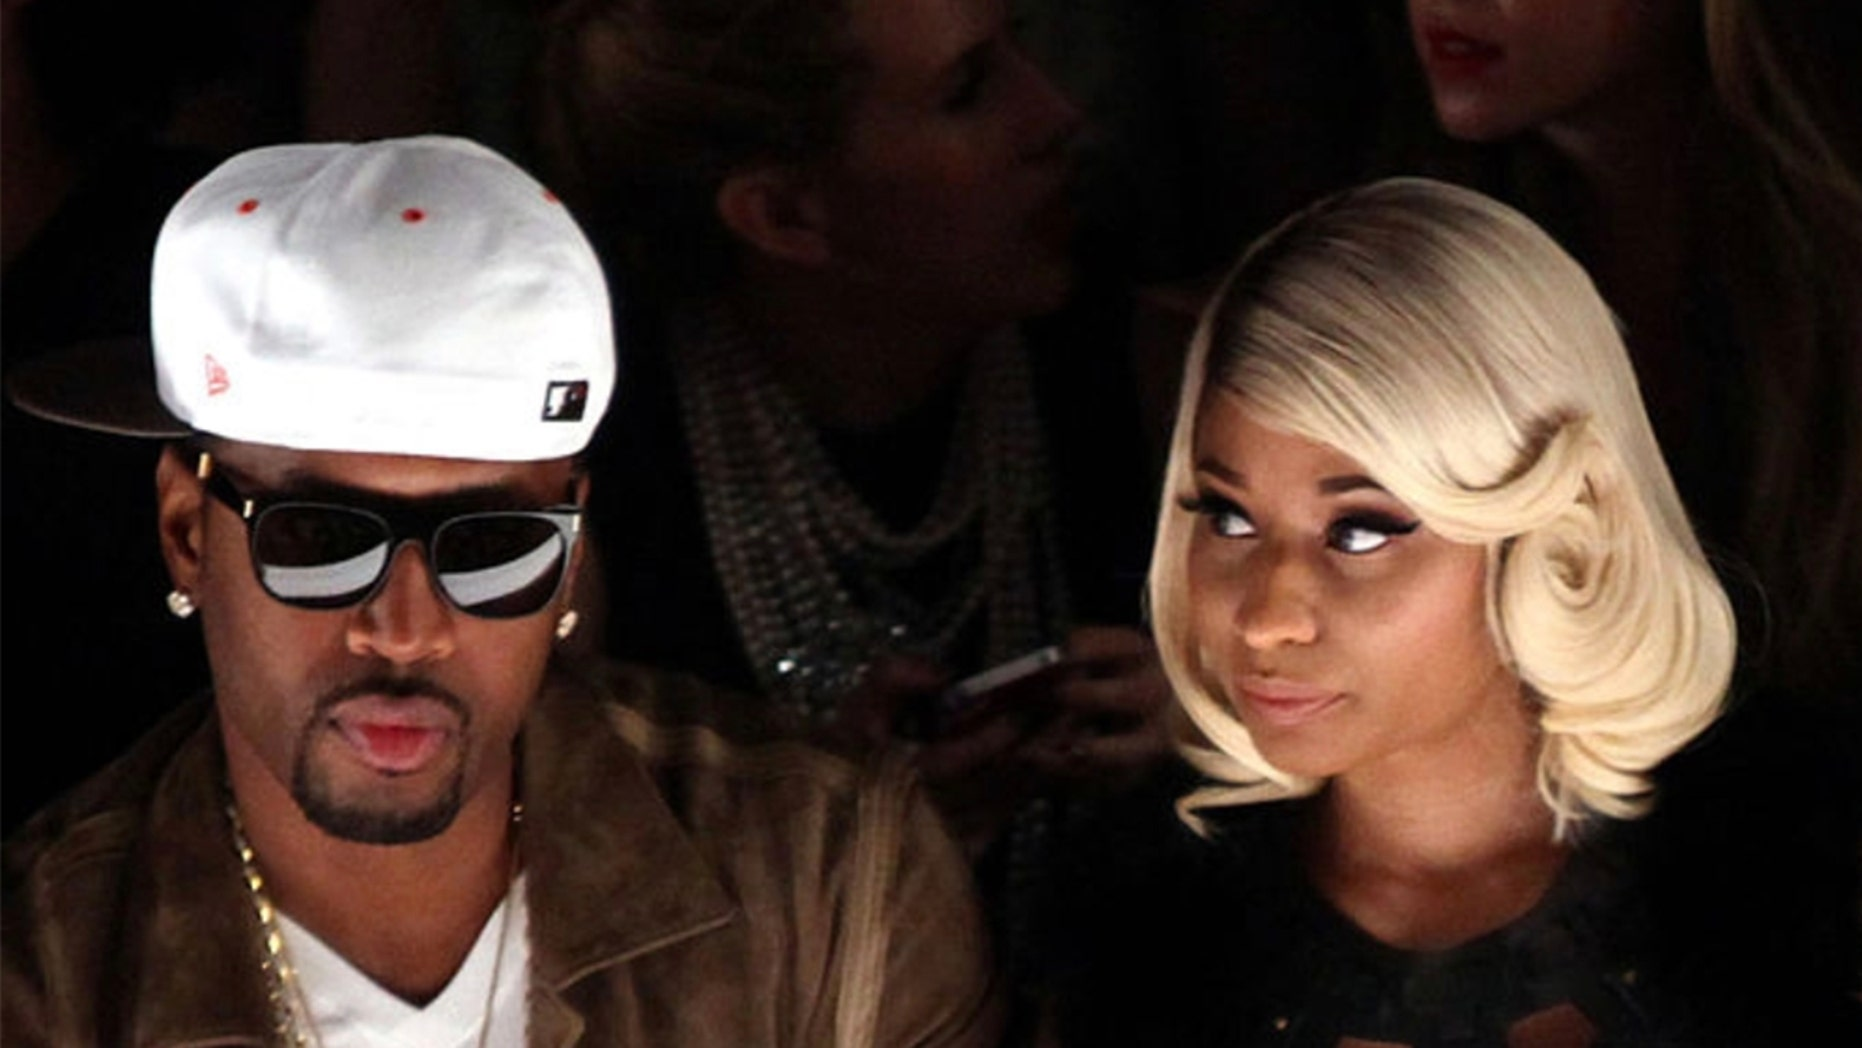 Safaree Samuels, left, accused his ex-girlfriend Nicki Minaj of assault.